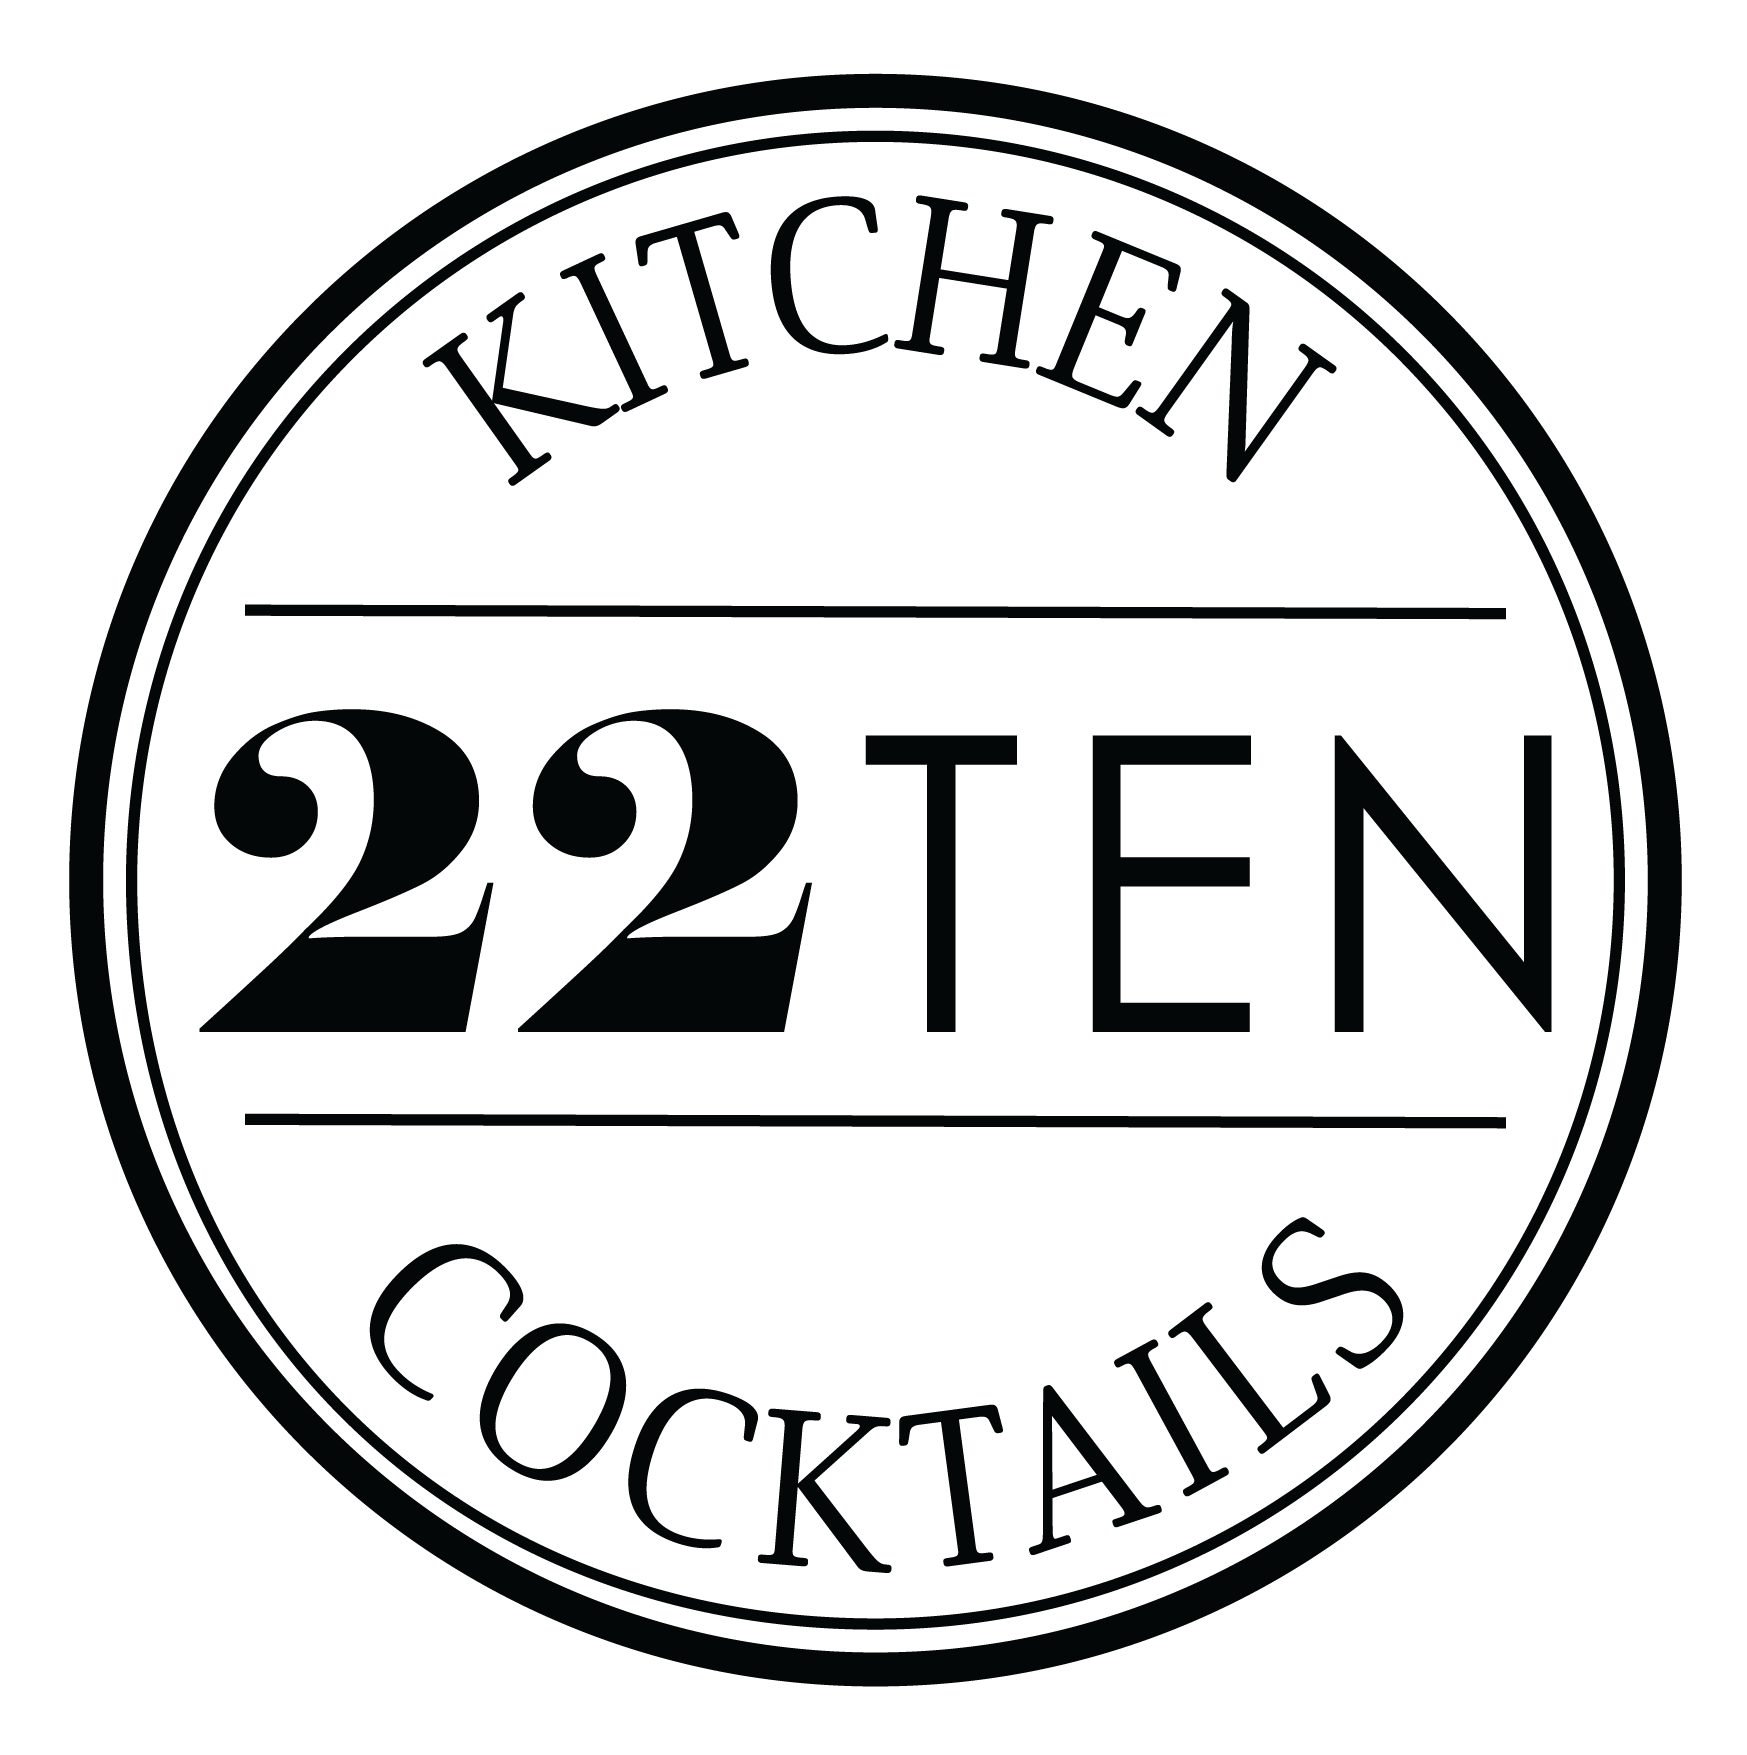 22 ten kitchen cocktails careers sioux falls sd Hospitality Guest Service Cover Letter